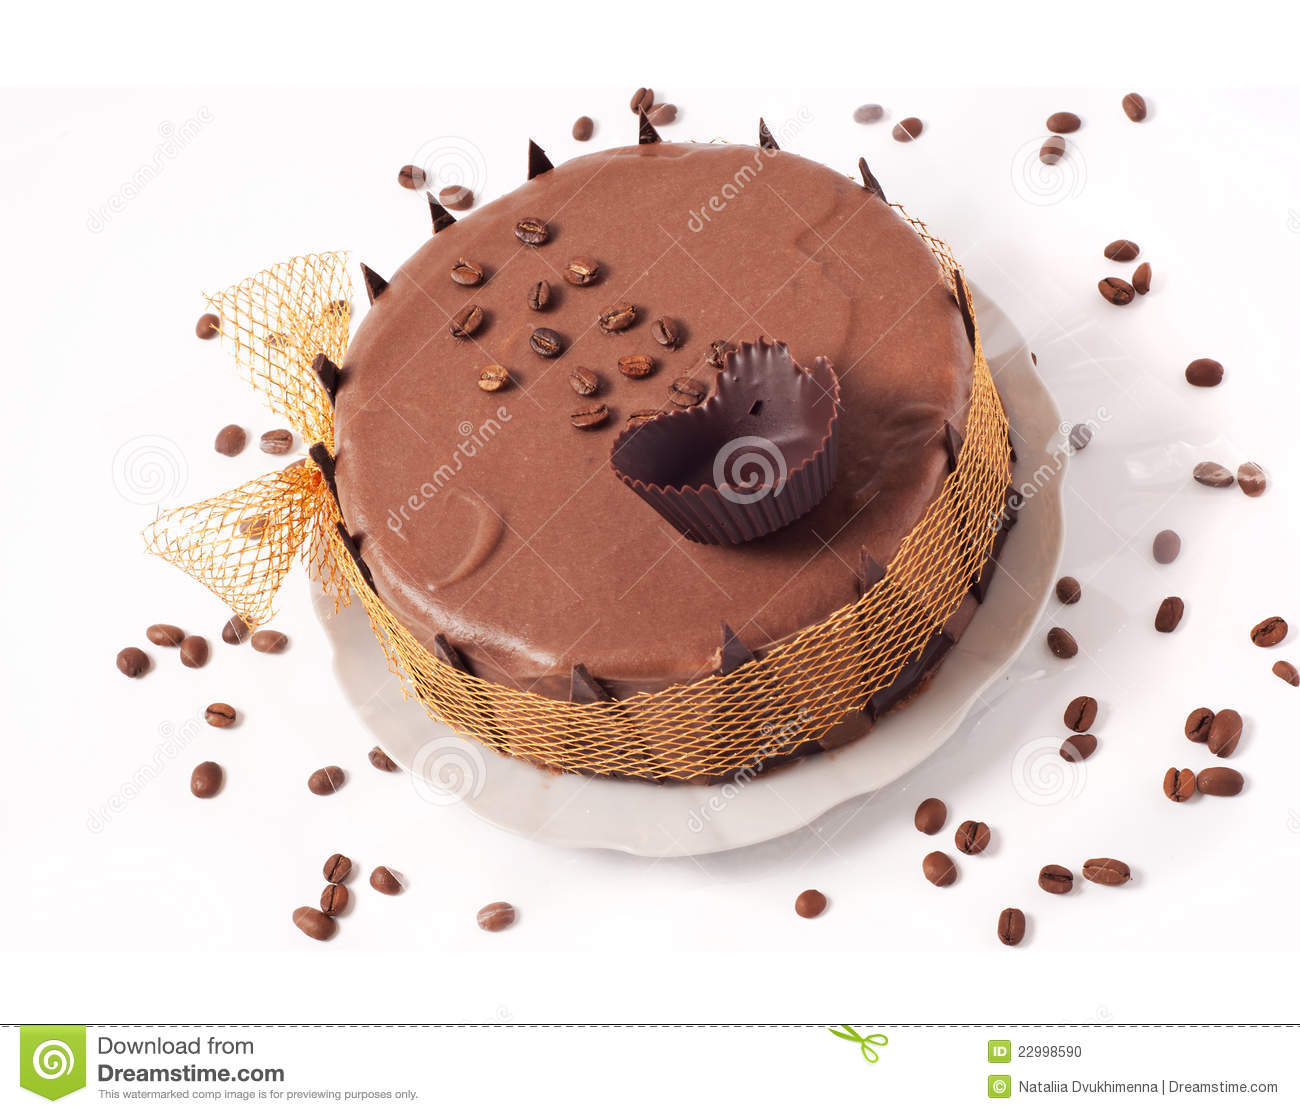 Chocolate Cake With Coffee Beans Stock Photo - Image: 22998590